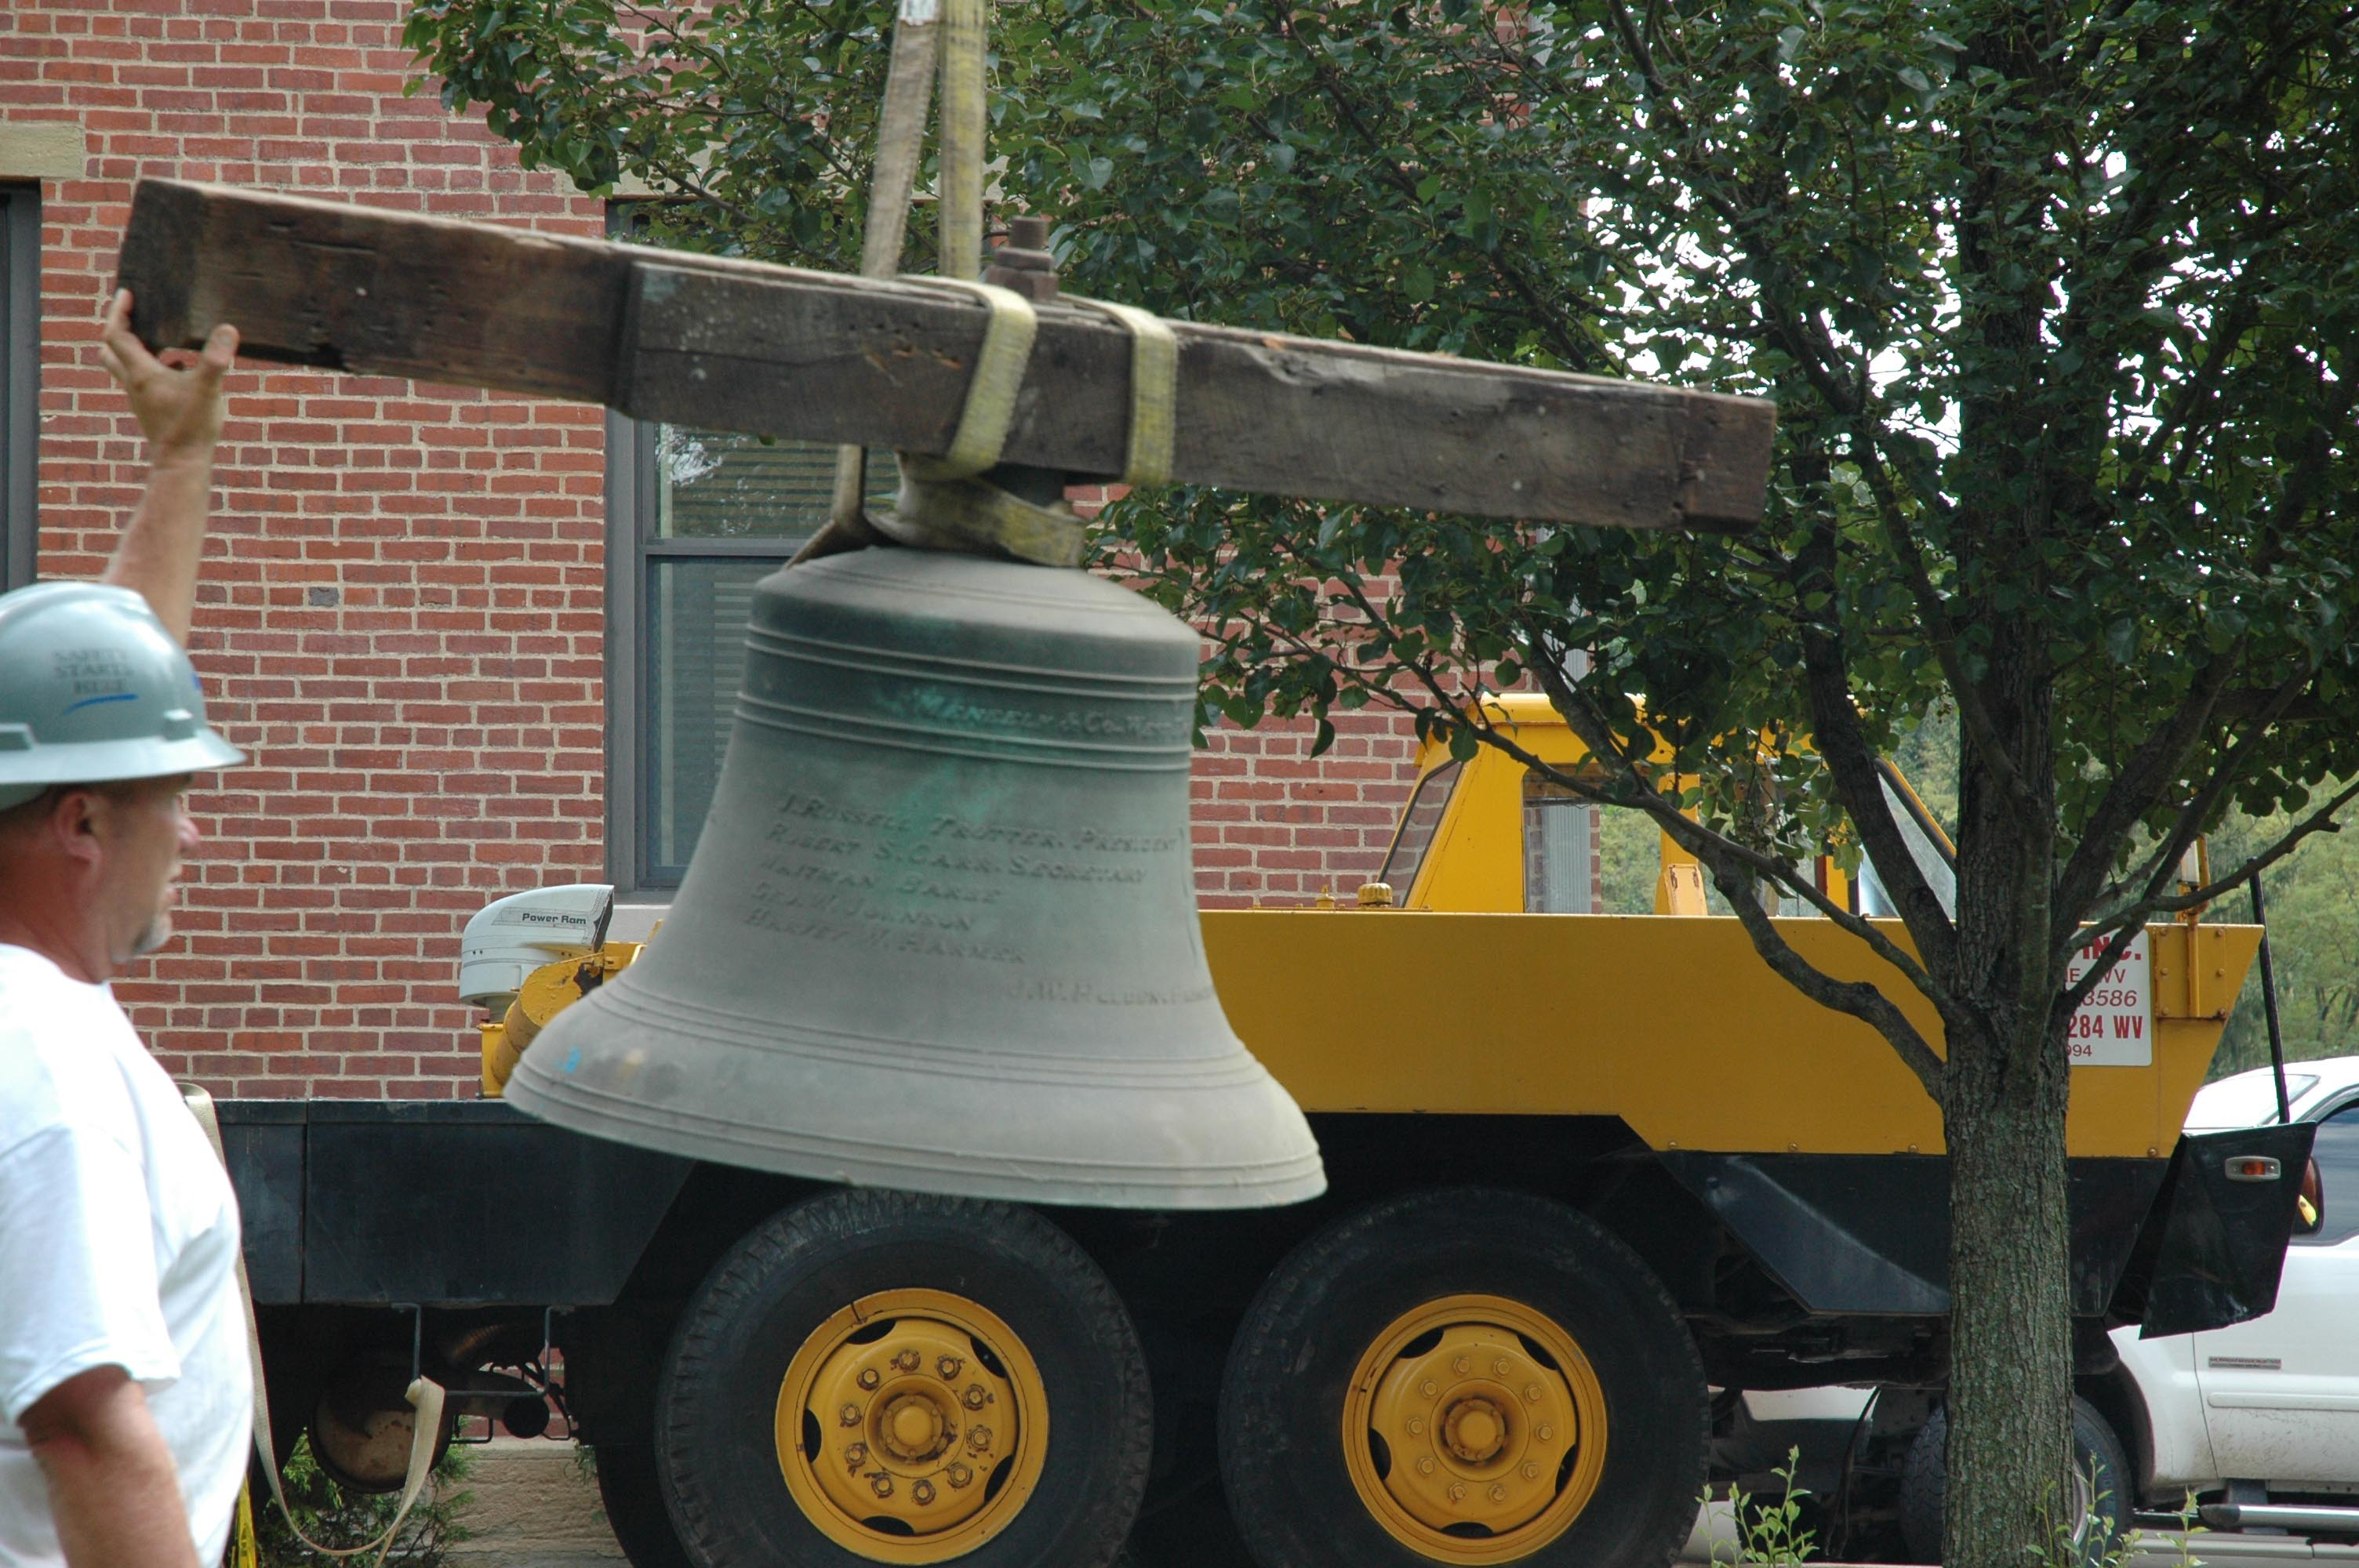 The bell was the heaviest item to be removed from the original clock workings that were installed in 1899. The Bell is engraved with the names of the 1899 Board of Regents members and the Principal of the Glenville Normal School at the time.